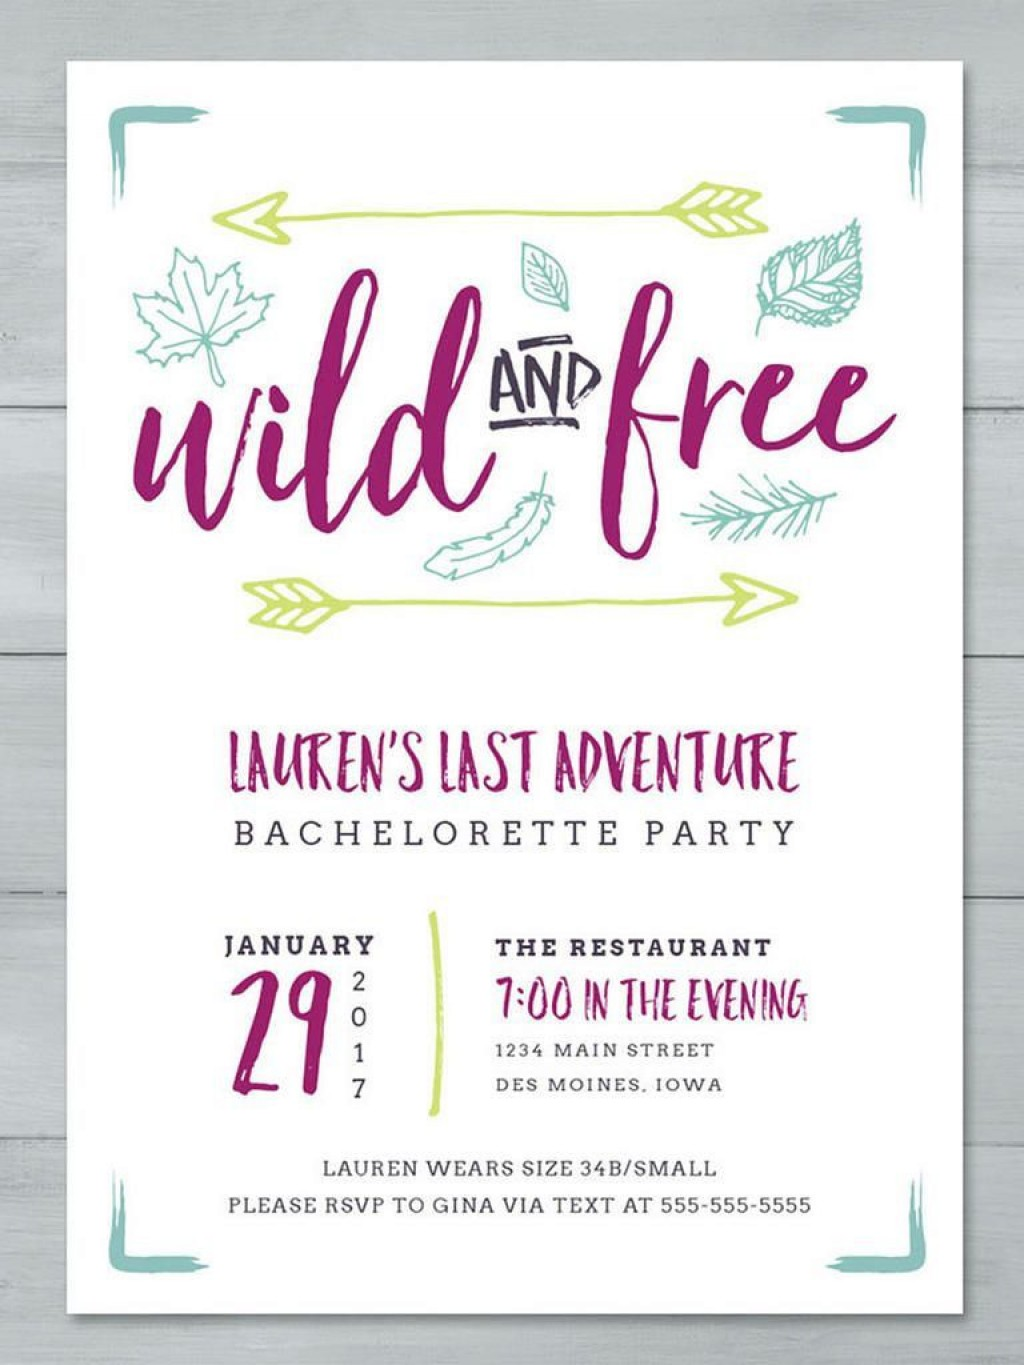 003 Stunning Bachelorette Itinerary Template Free High Resolution  Party Editable DownloadLarge